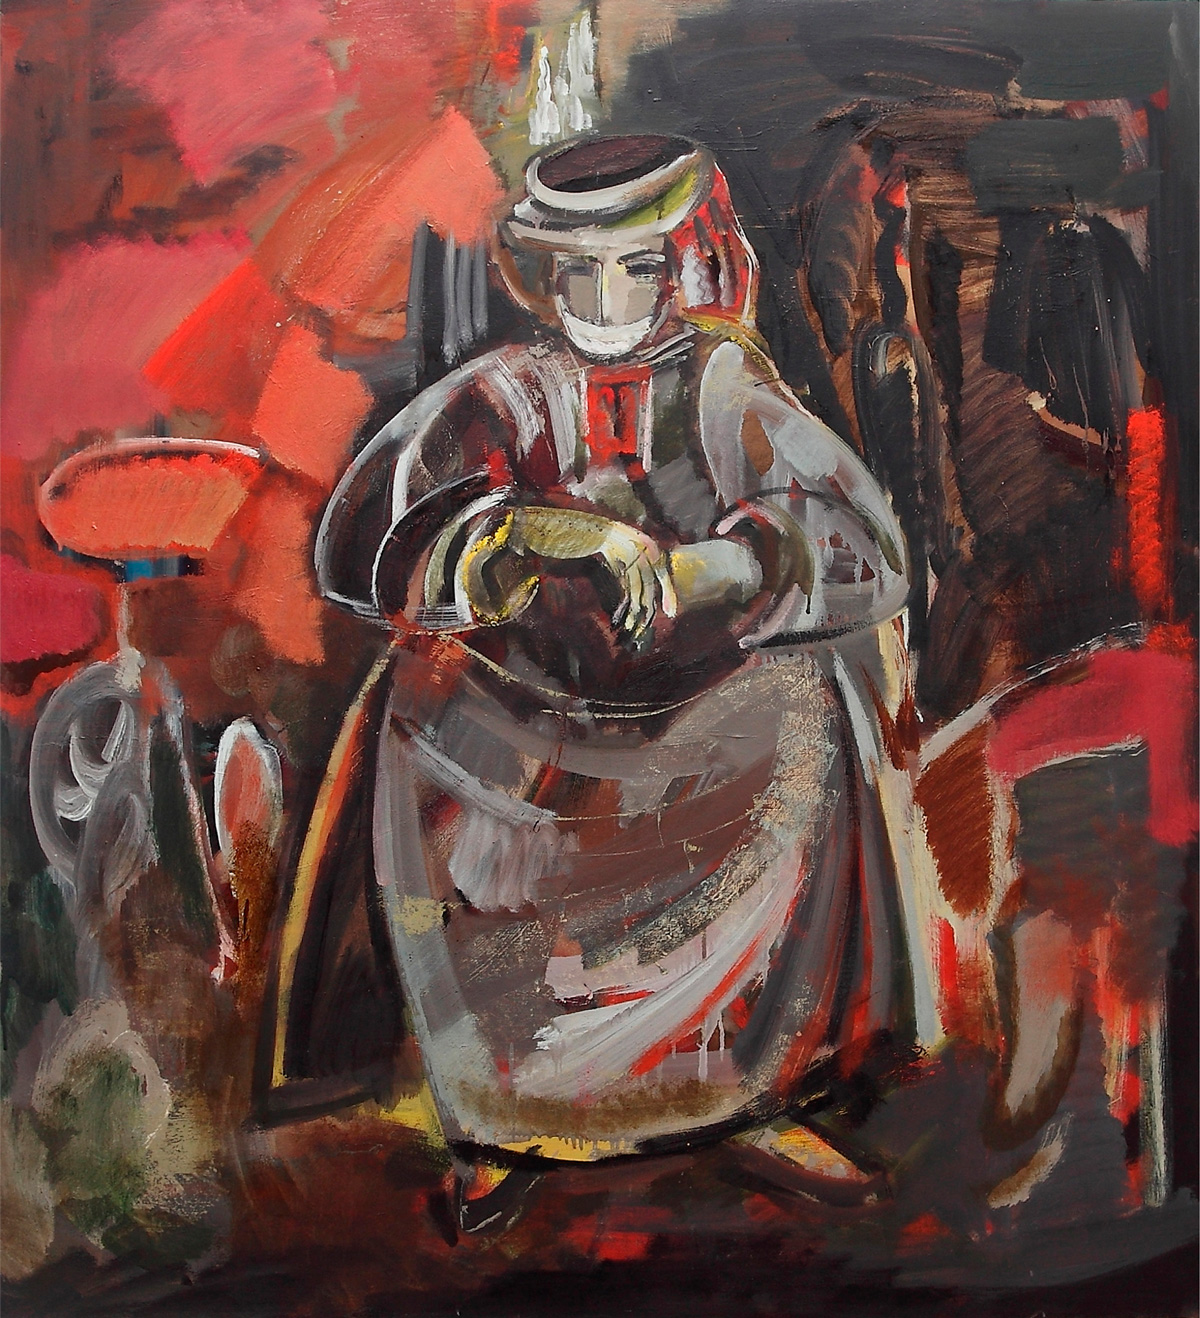 армянка 130х120 х - An Armenian Woman of Karabakh, 130x120, oil on canvas, 2009